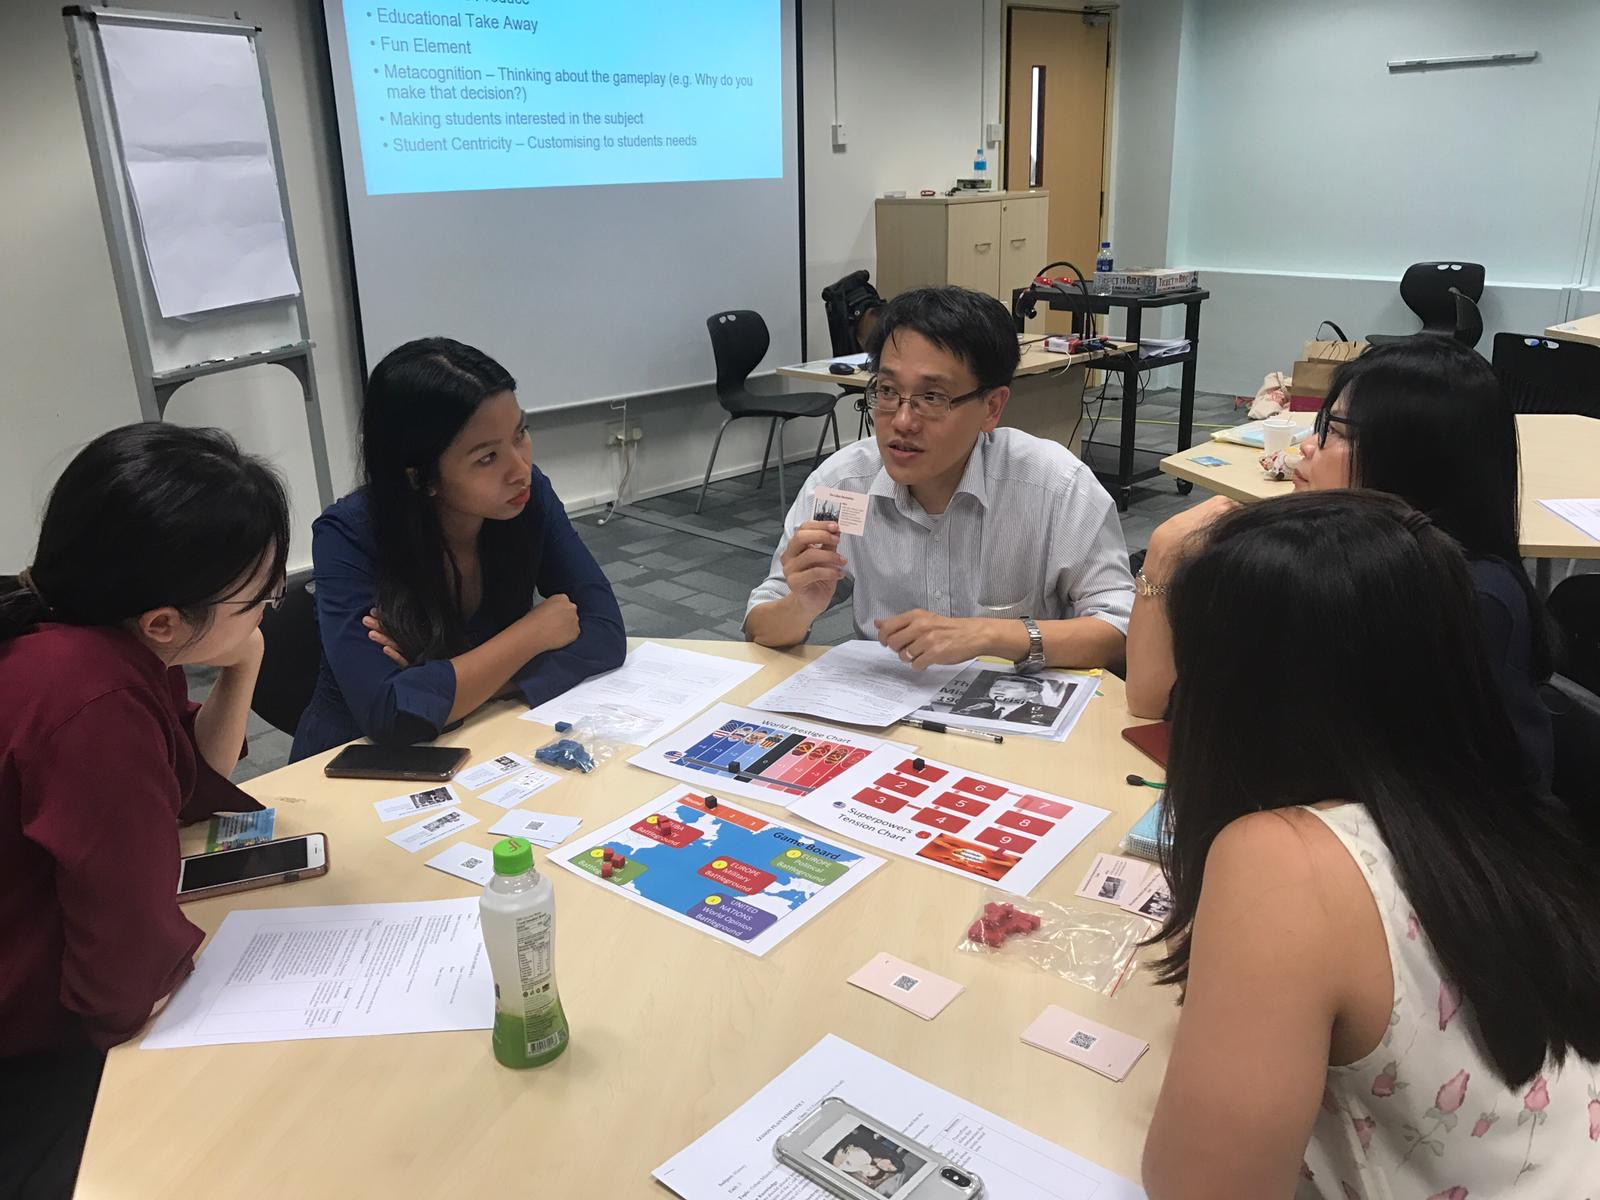 Teachers play testing a game during my Fulbright research project in Singapore.